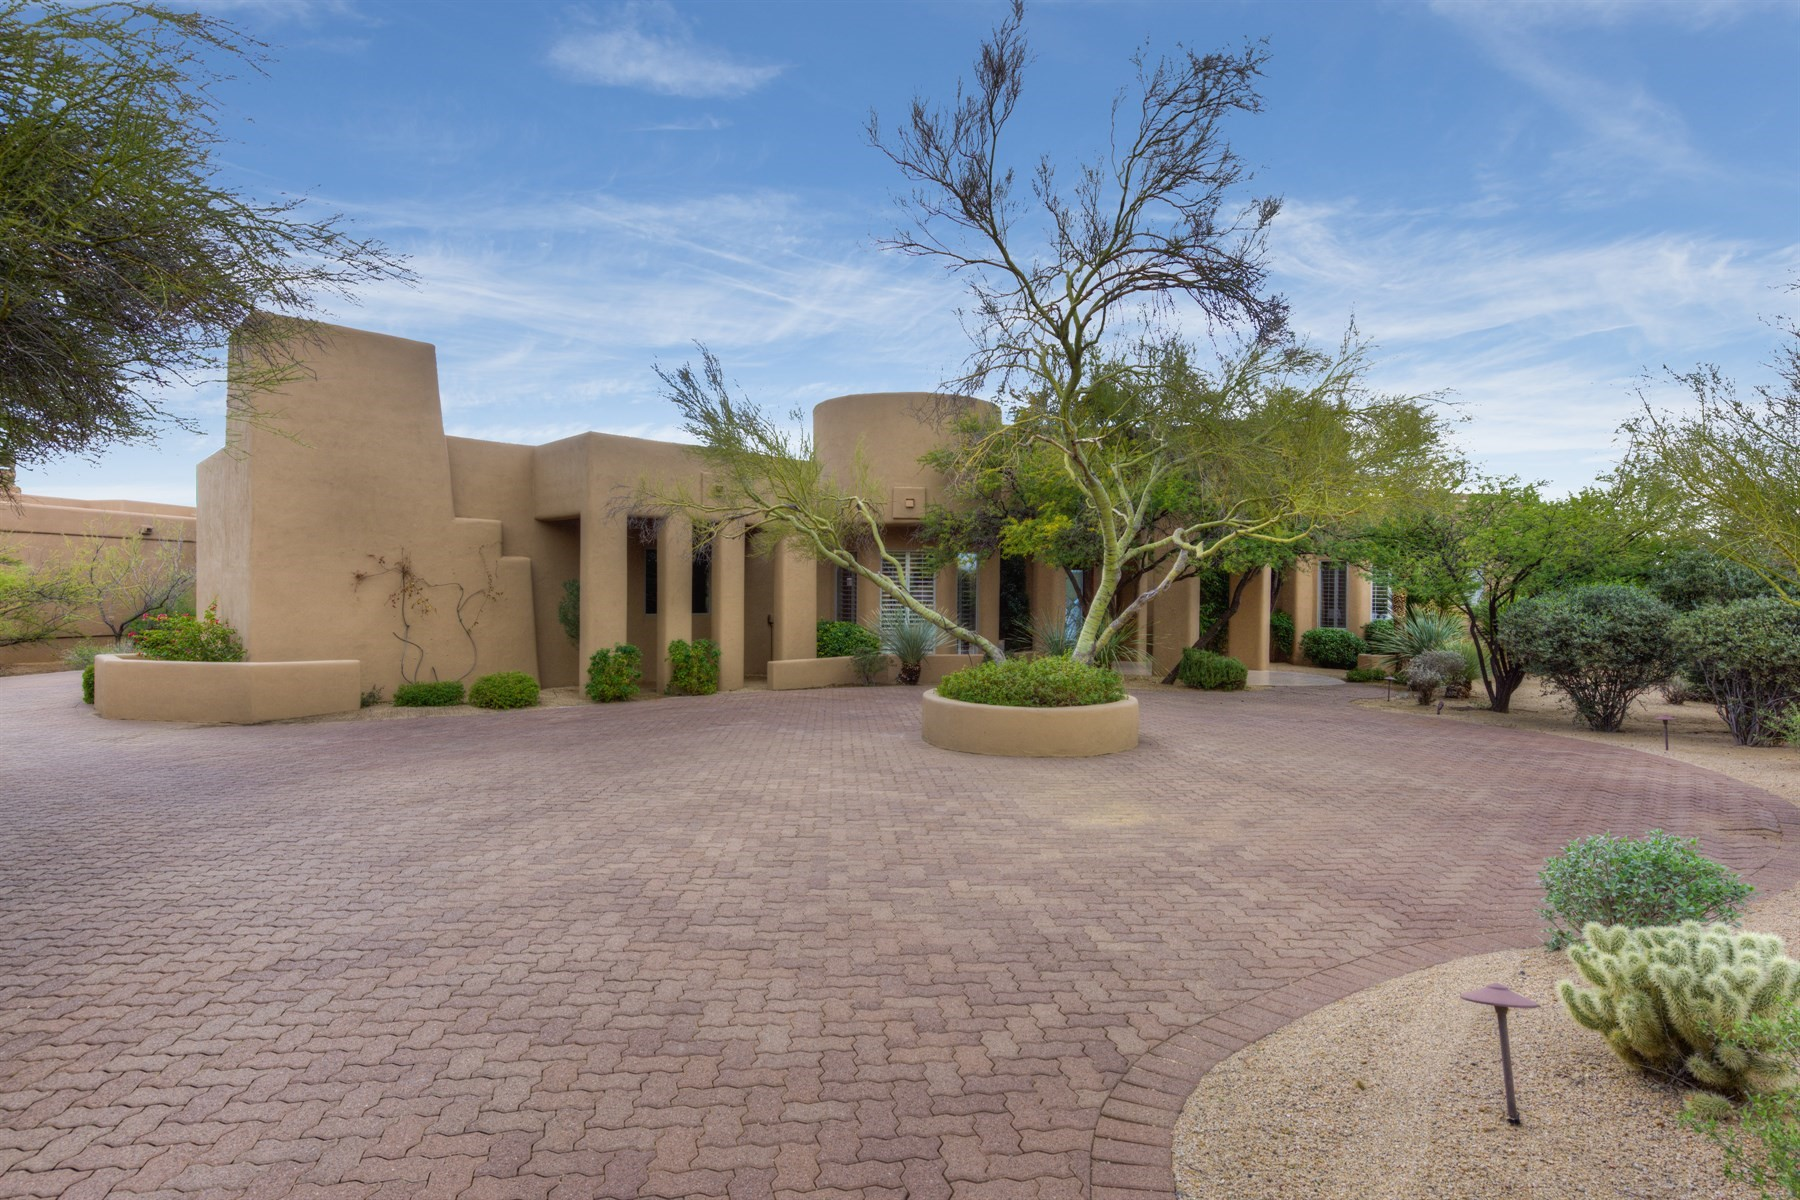 一戸建て のために 売買 アット Beautiful Soft Contemporary home is located in the community of Desert Highland 10040 E HAPPY VALLEY RD 330 Scottsdale, アリゾナ, 85255 アメリカ合衆国